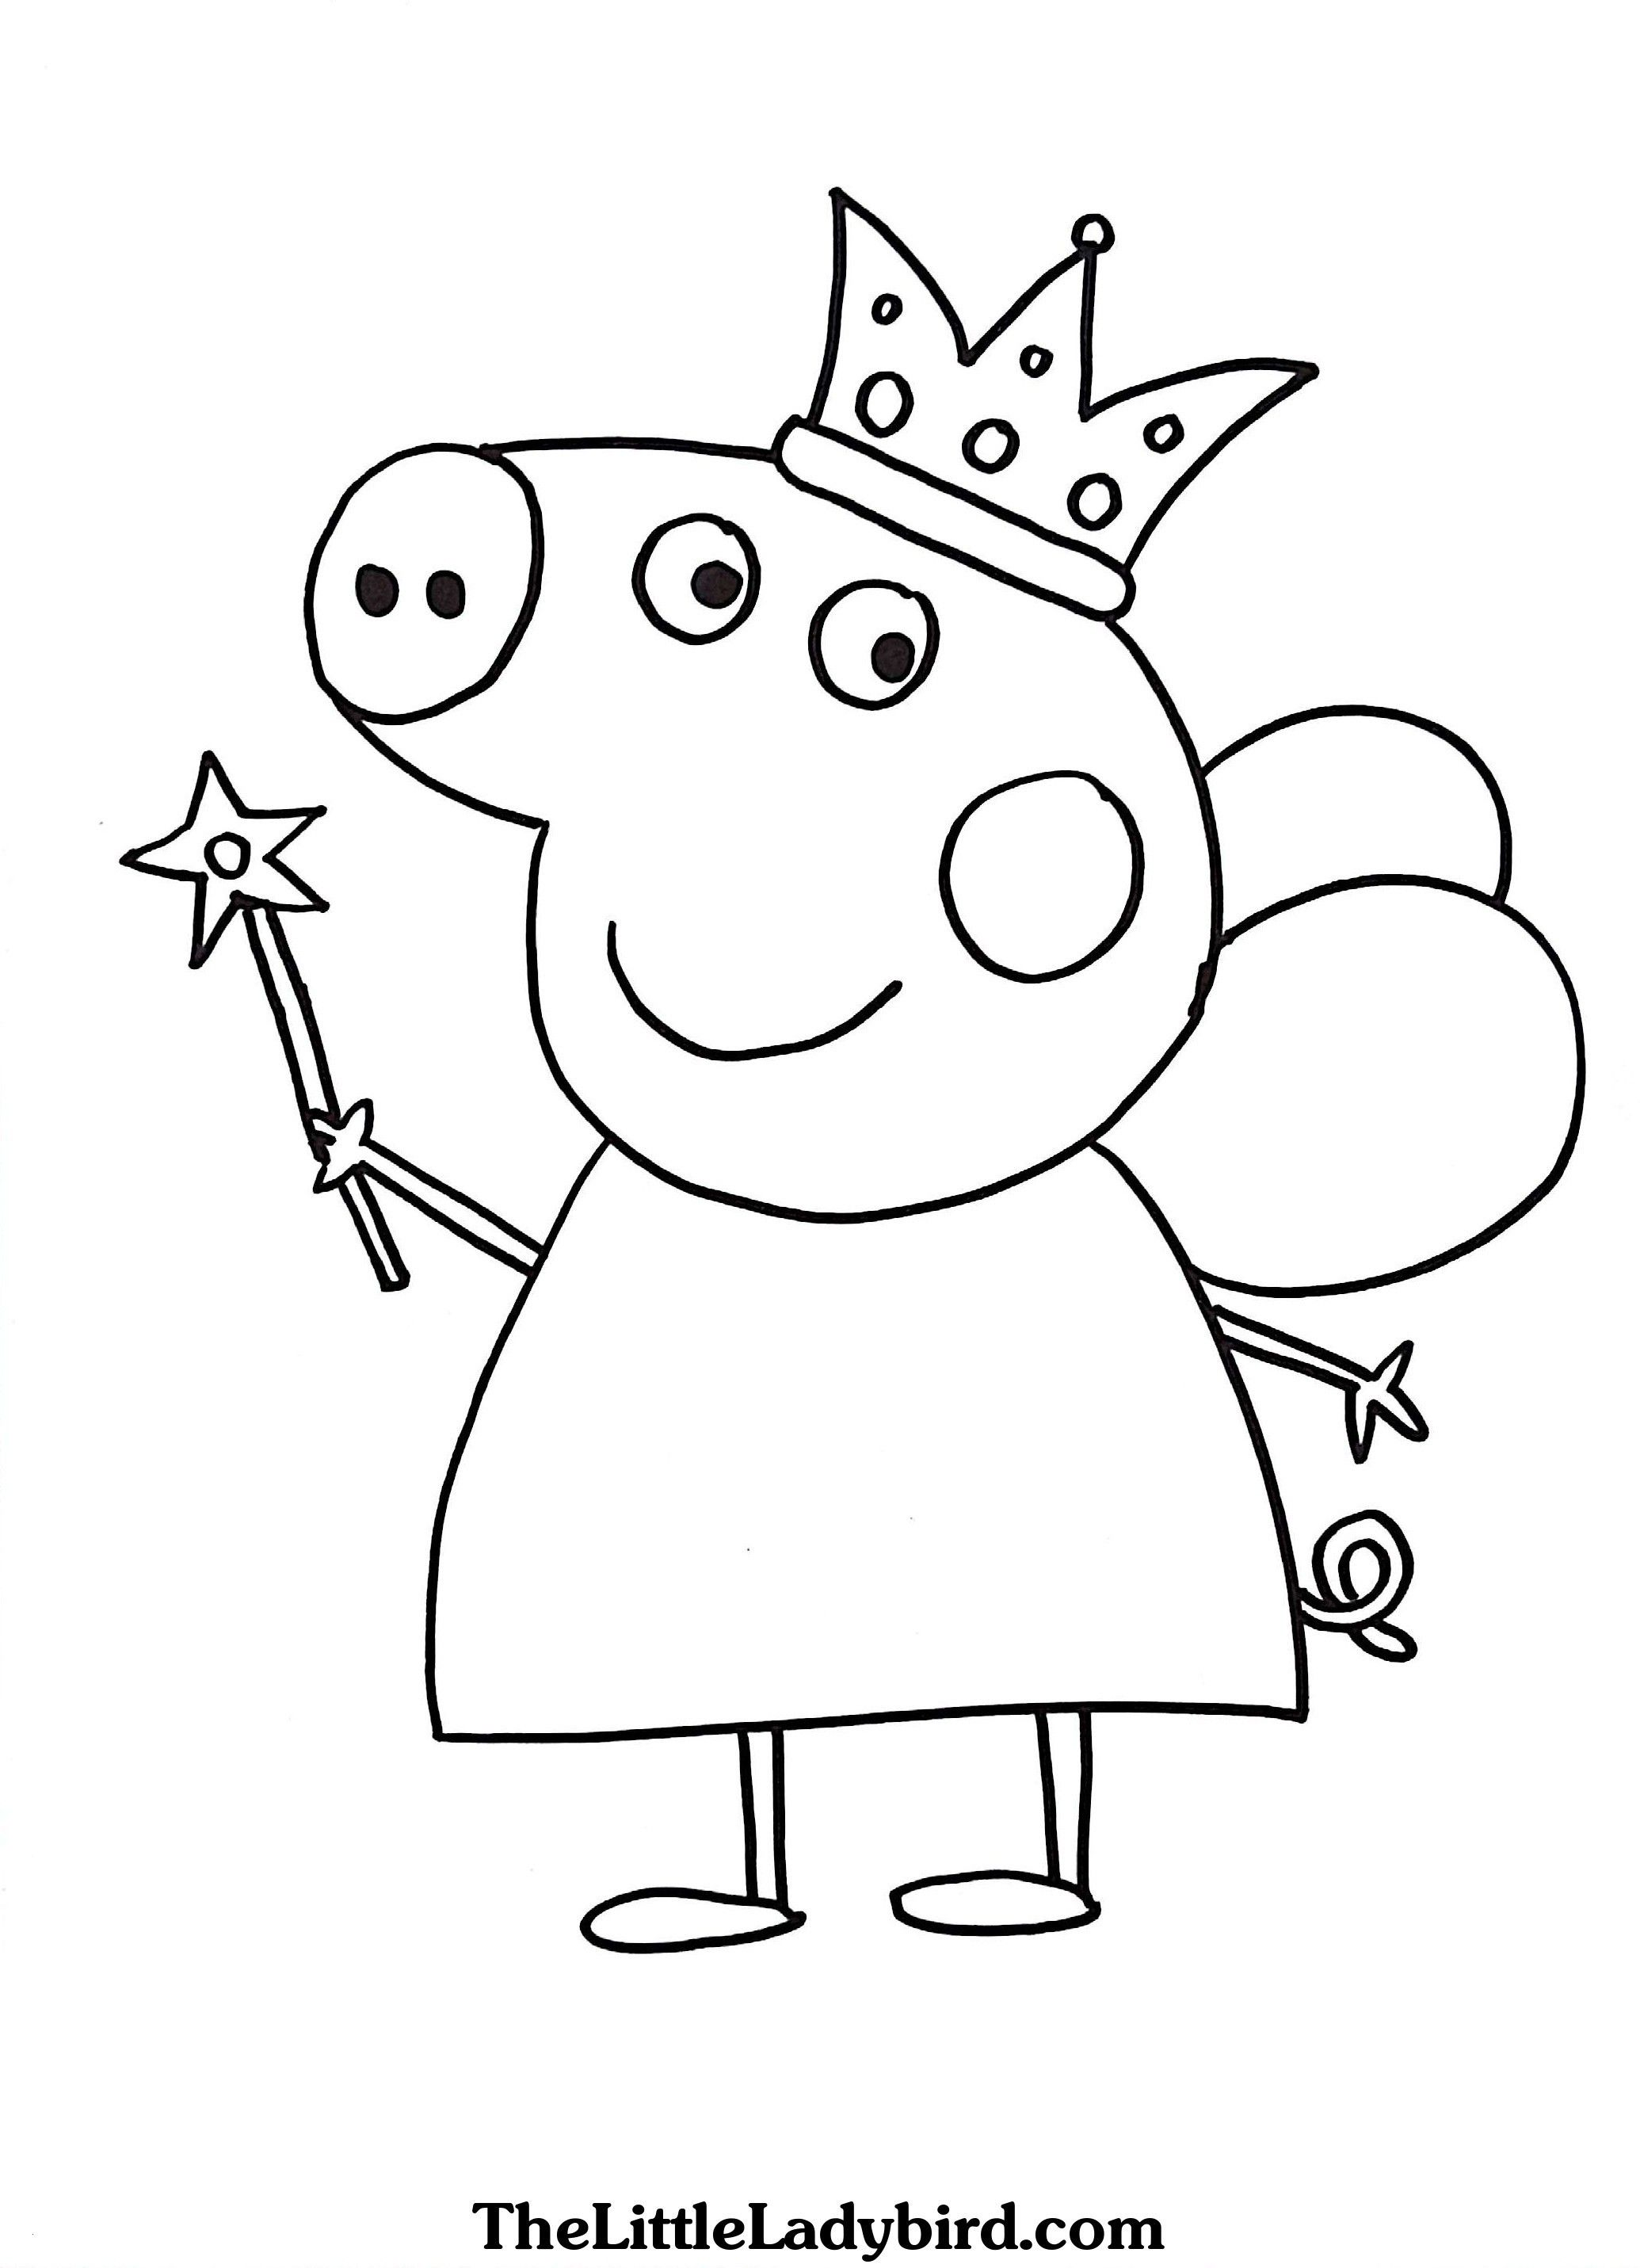 Peppa Pig Valentines Coloring Pages (With images) | Peppa pig ...